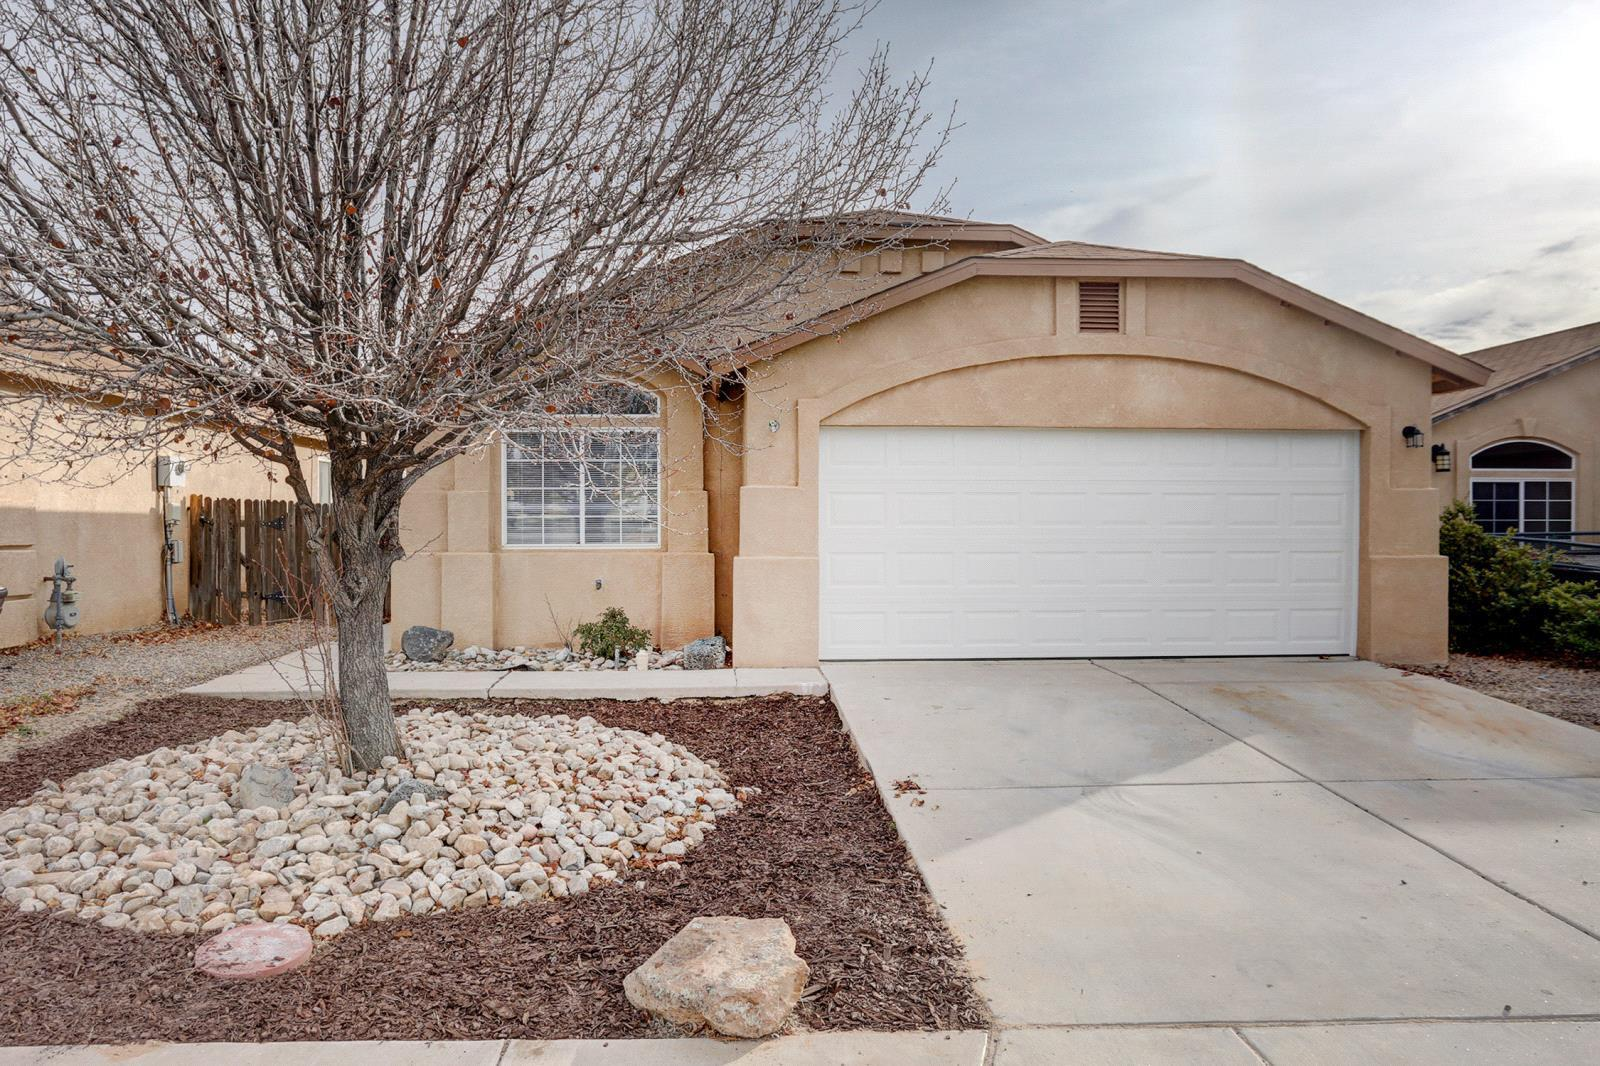 Northwest Albuquerque and Northwest Heights Homes for Sale -  Single Story,  10732 NW Shooting Star Street